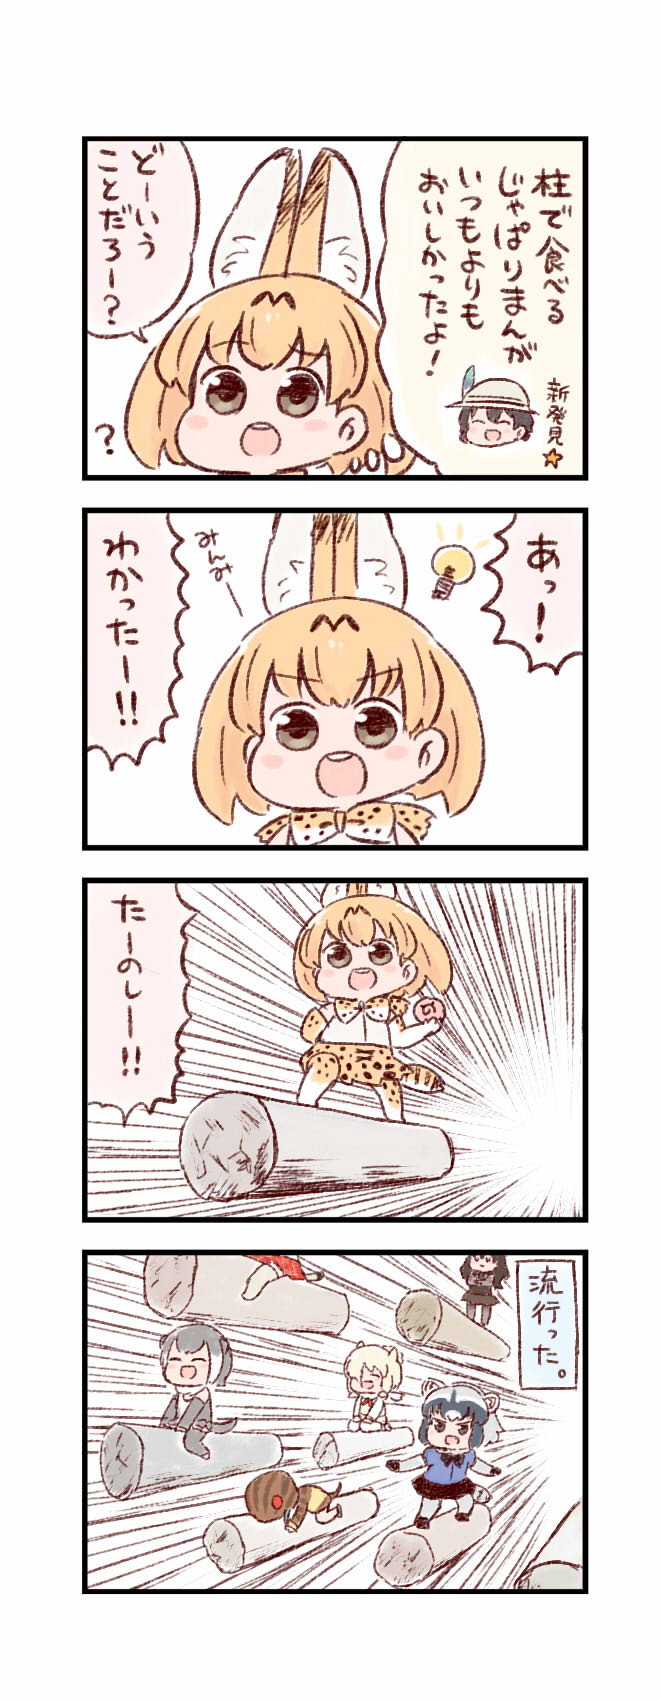 4koma 6+girls :d :o alpaca_ears alpaca_suri_(kemono_friends) animal_ears batta_(ijigen_debris) black_eyes black_hair black_neckwear black_skirt blonde_hair blue_shirt blush_stickers bow bowtie chibi closed_eyes comic commentary_request common_raccoon_(kemono_friends) dragon_ball elbow_gloves emphasis_lines eyebrows_visible_through_hair food gloves grey_gloves grey_hair grey_hat hair_over_one_eye hat_feather helmet highres holding holding_food hood hood_up hoodie japari_bun kaban_(kemono_friends) kemono_friends legs_apart light_bulb lion_(kemono_friends) lion_tail log looking_at_viewer lying moose_(kemono_friends) multicolored_hair multiple_girls on_stomach open_mouth orange_hair otter_ears otter_tail parody pith_helmet puffy_short_sleeves puffy_sleeves raccoon_ears raccoon_tail raised_eyebrow red_skirt round_teeth seiza serval_(kemono_friends) serval_ears serval_print serval_tail shirt short_hair short_sleeves sitting skirt sleeveless sleeveless_shirt small-clawed_otter_(kemono_friends) smile snake_tail tail tao_pai_pai teeth tengen_toppa_gurren_lagann thought_bubble translation_request tsuchinoko_(kemono_friends) white_legwear white_shirt